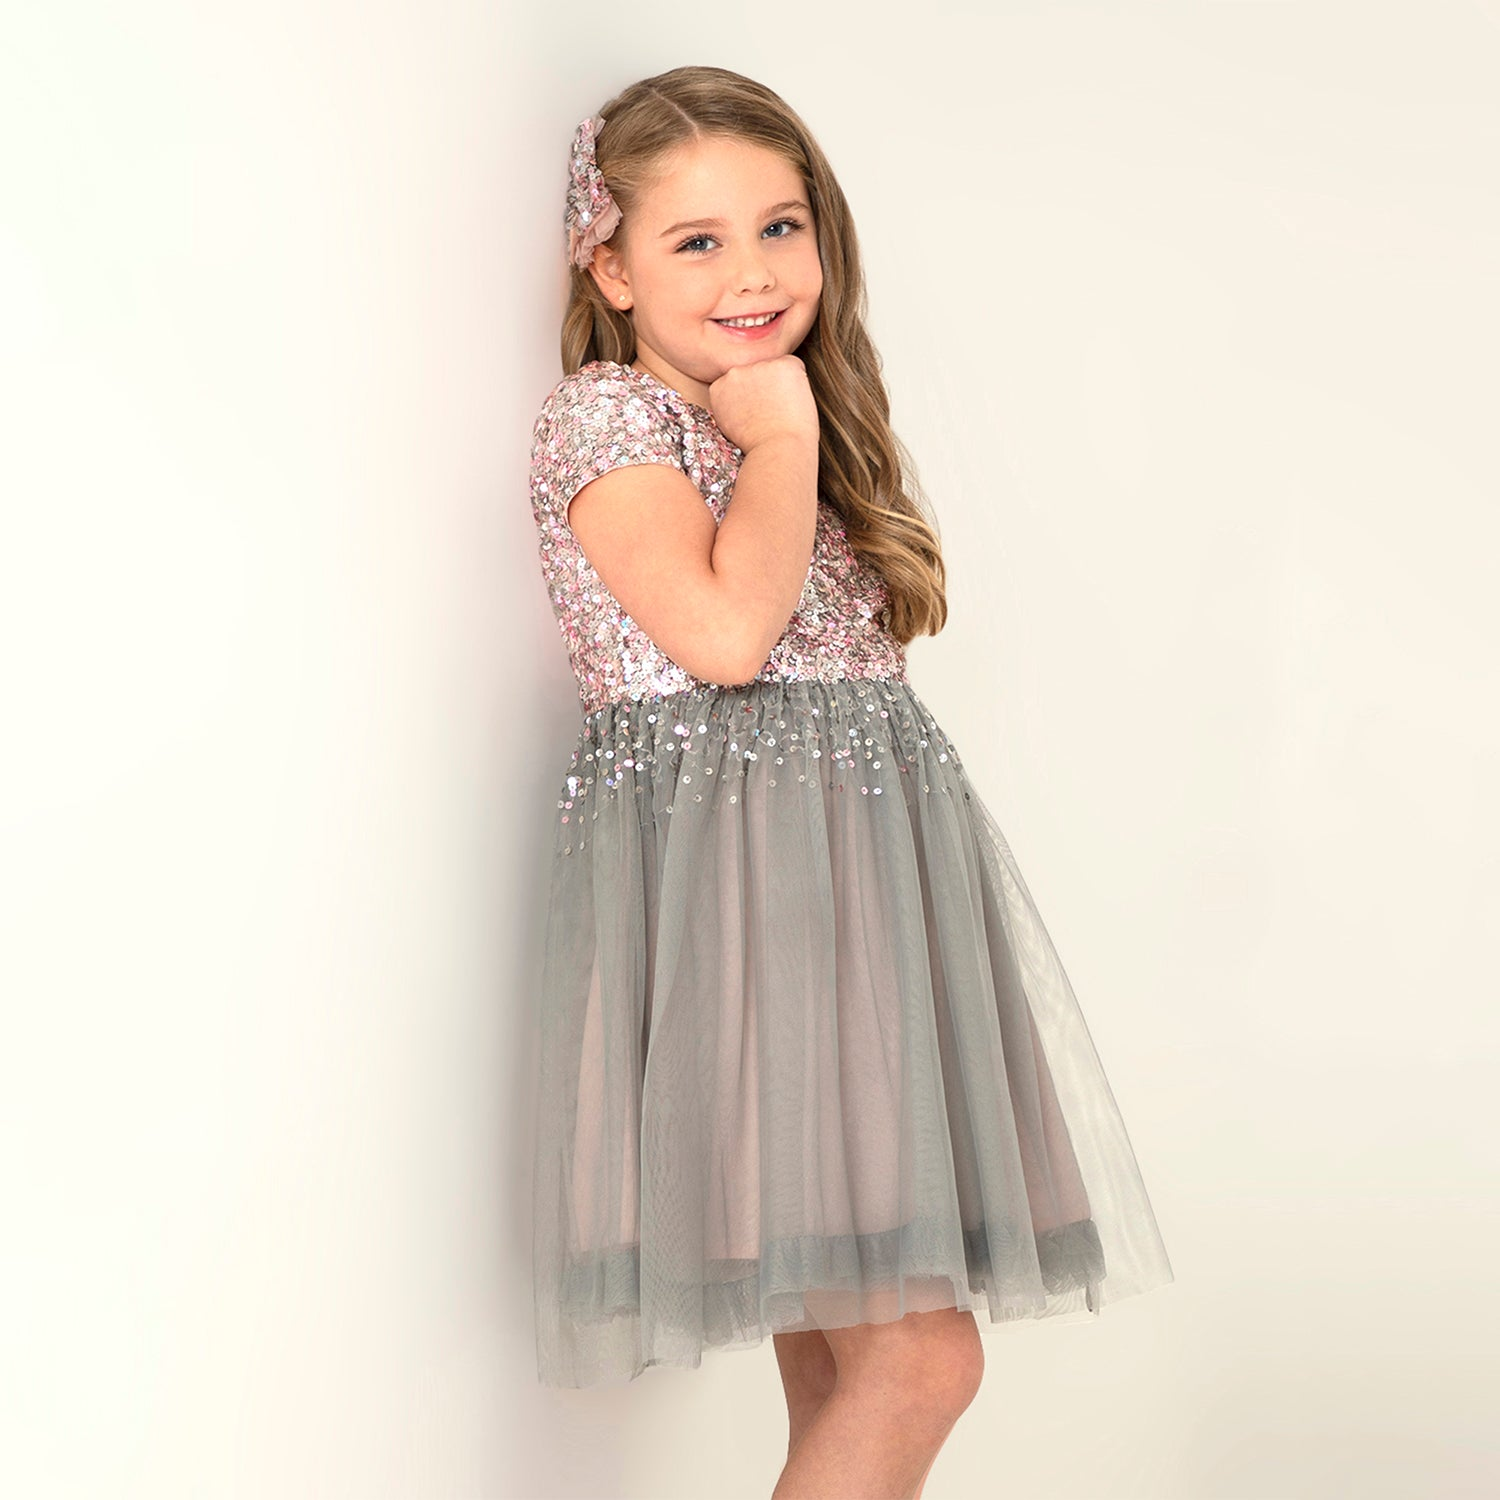 Falling Star Dress for Girls